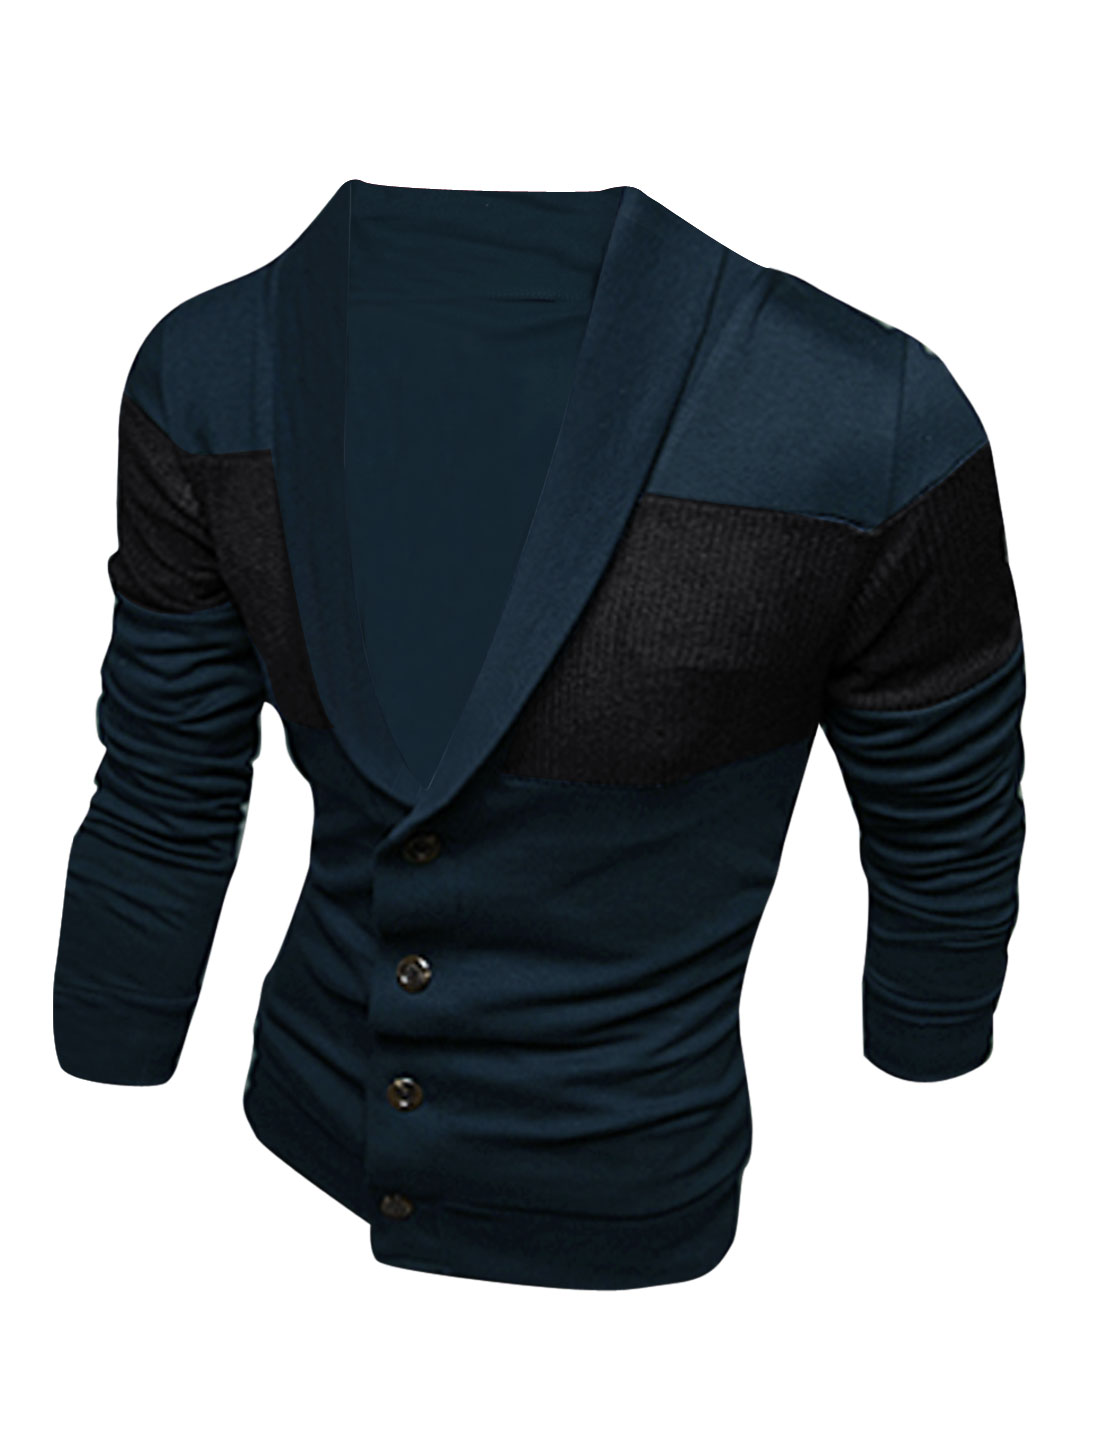 Men Casual Single Four Buttons Knitted Panel Cardigan Navy Blue M